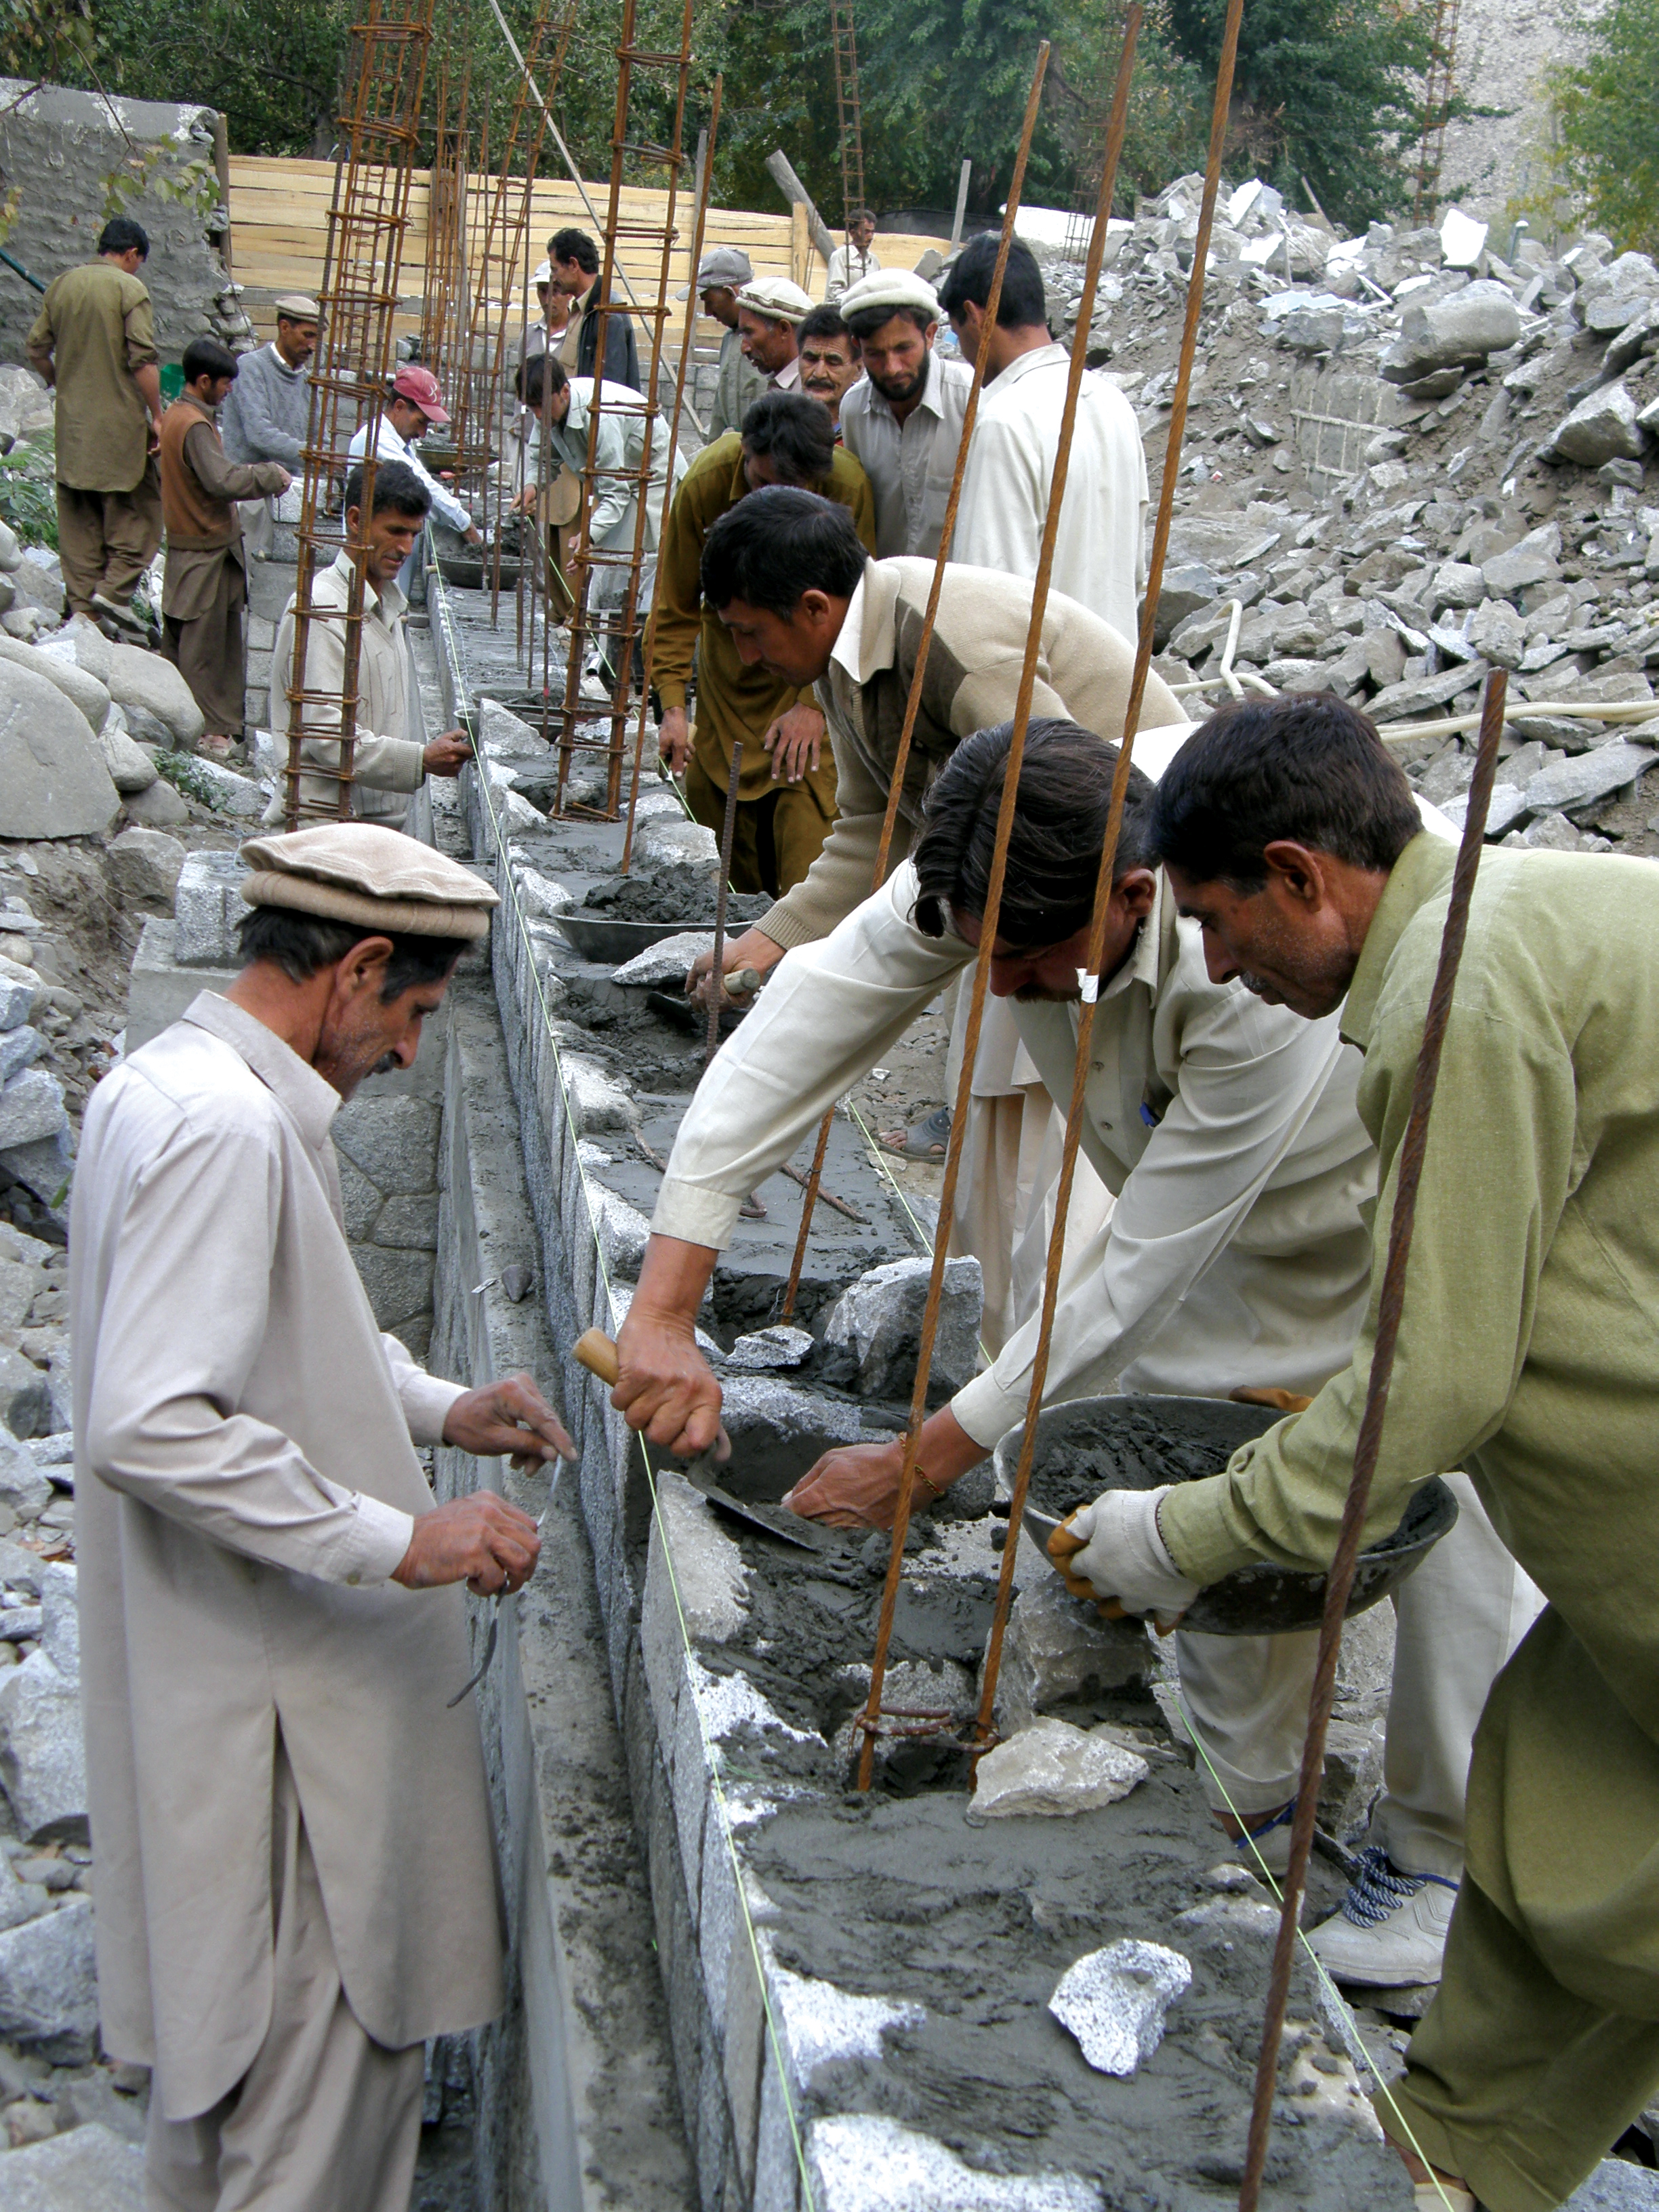 Members of the Jamat in Northern Pakistan uphold a long tradition of taking part in the construction of a new Jamatkhana. Photo: Courtesy of AKPBS, Pakistan